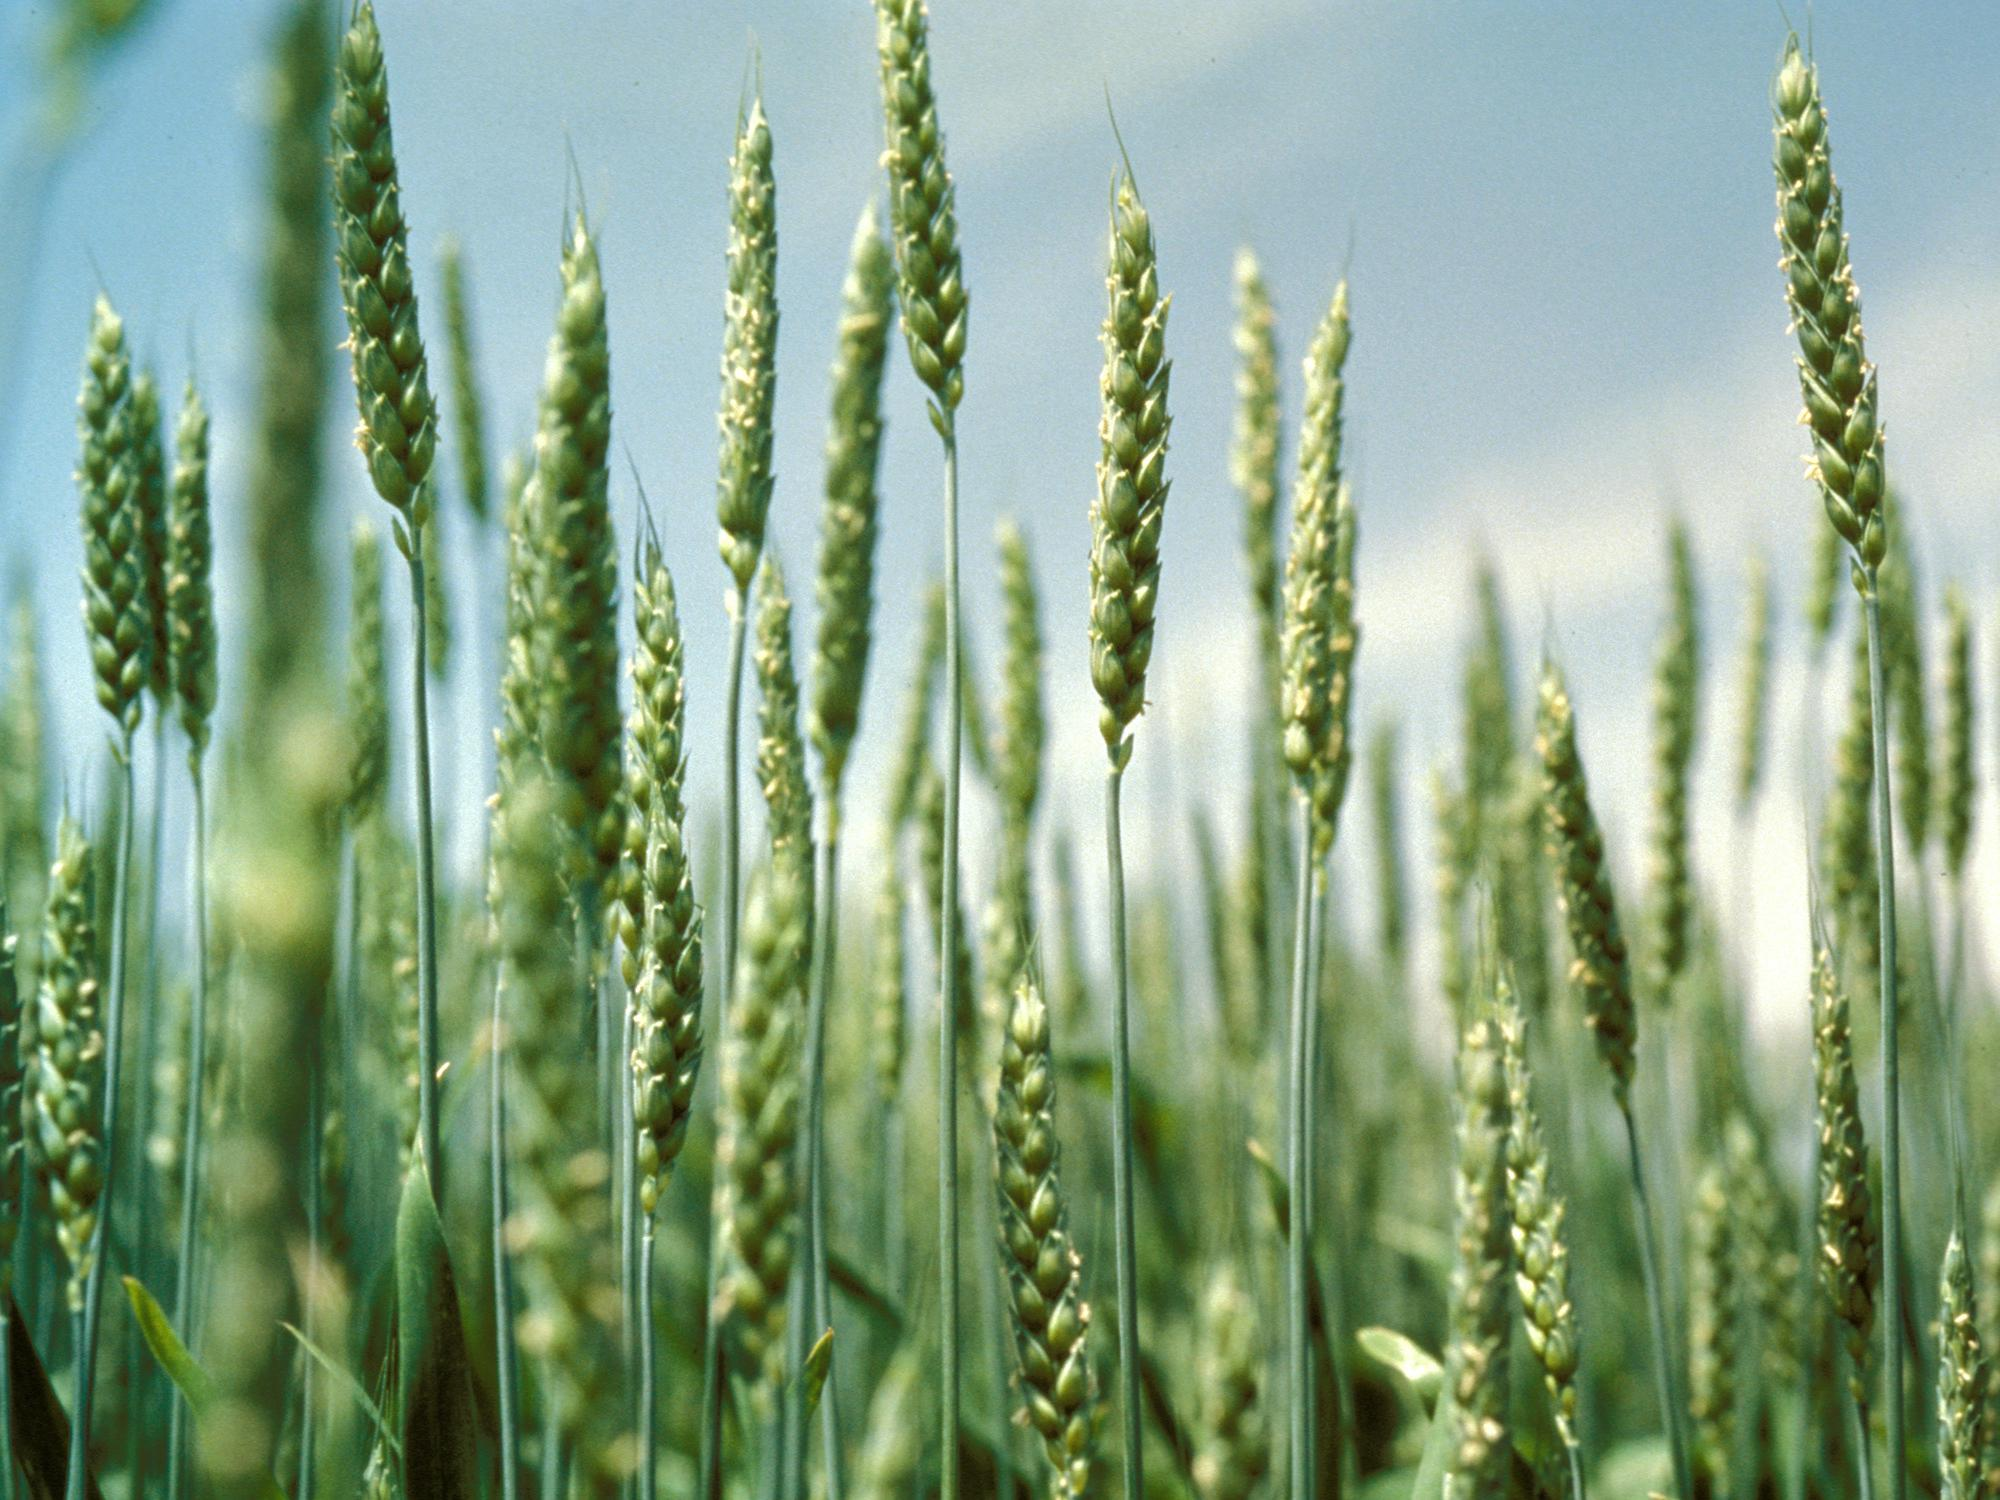 Nearly one-third of Mississippi's winter wheat crop was planted by Nov. 1. Good prices have increased wheat acres in the state. (File photo by MSU Ag Communications)